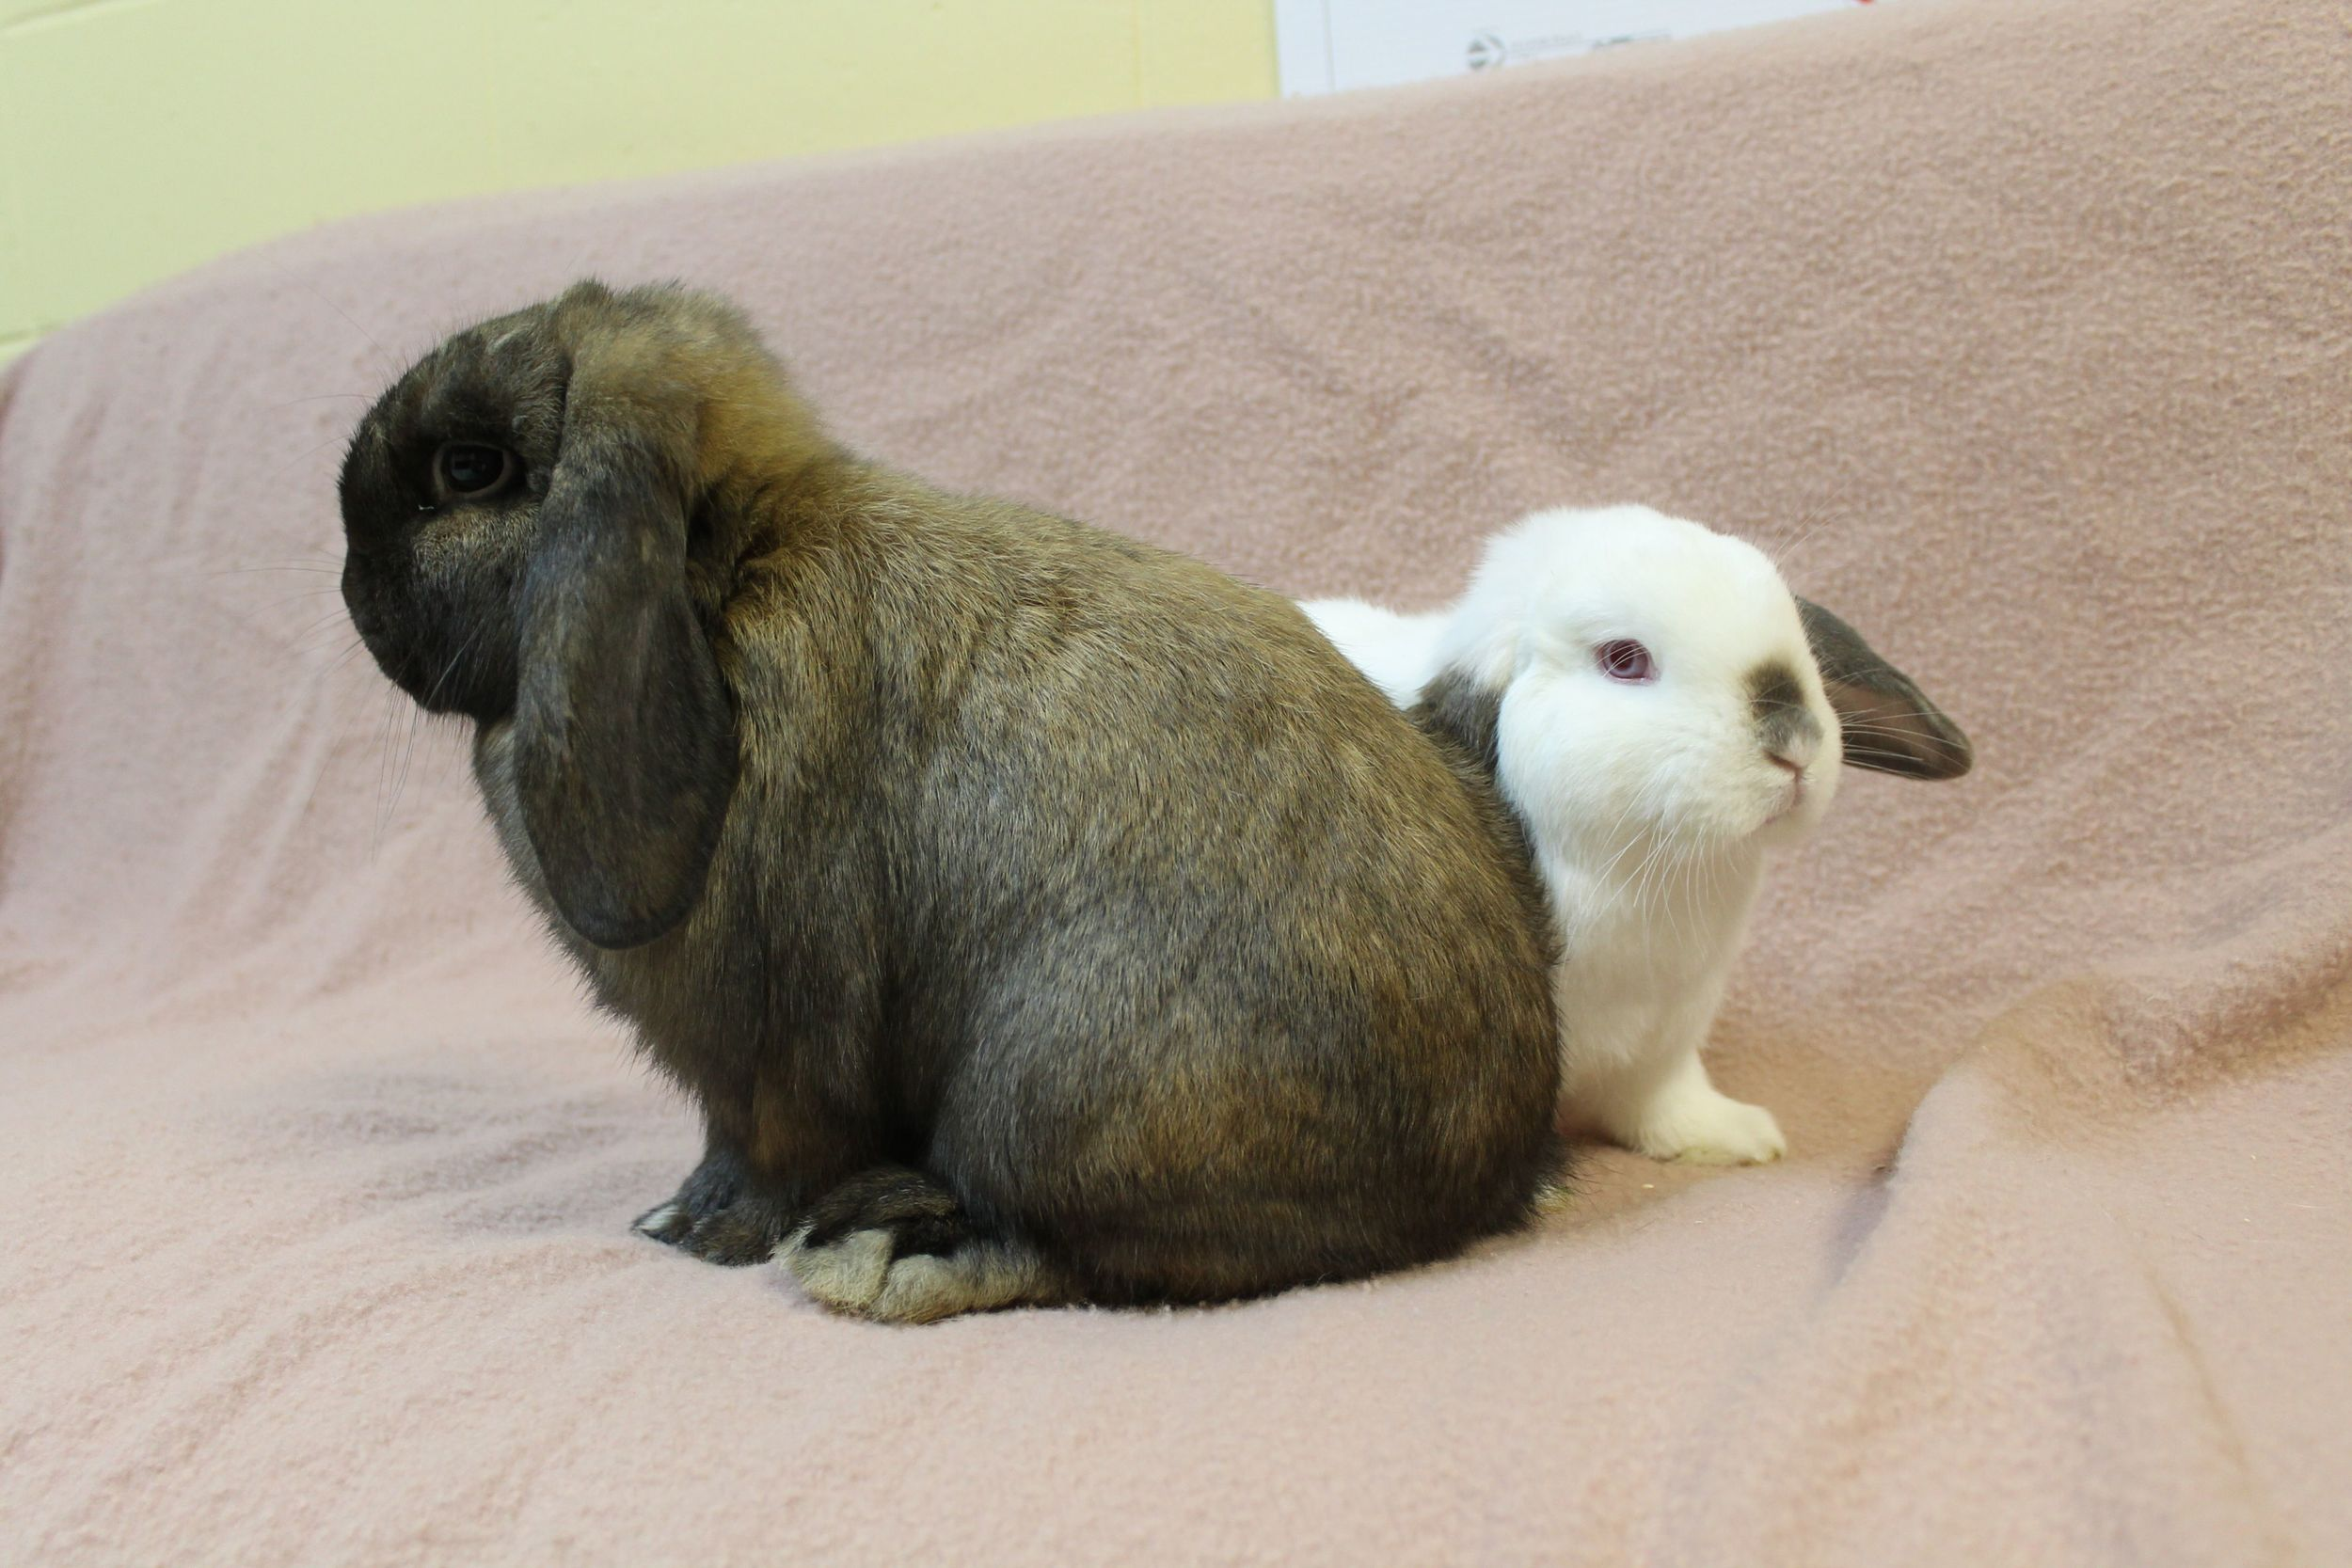 Brownie and Snow are an absolutely adorable little couple! They are very tightly bonded and must be adopted together. They will make you smile every day as they snuggle up together and groom each other. Bonded bunnies are twice the joy and fun!